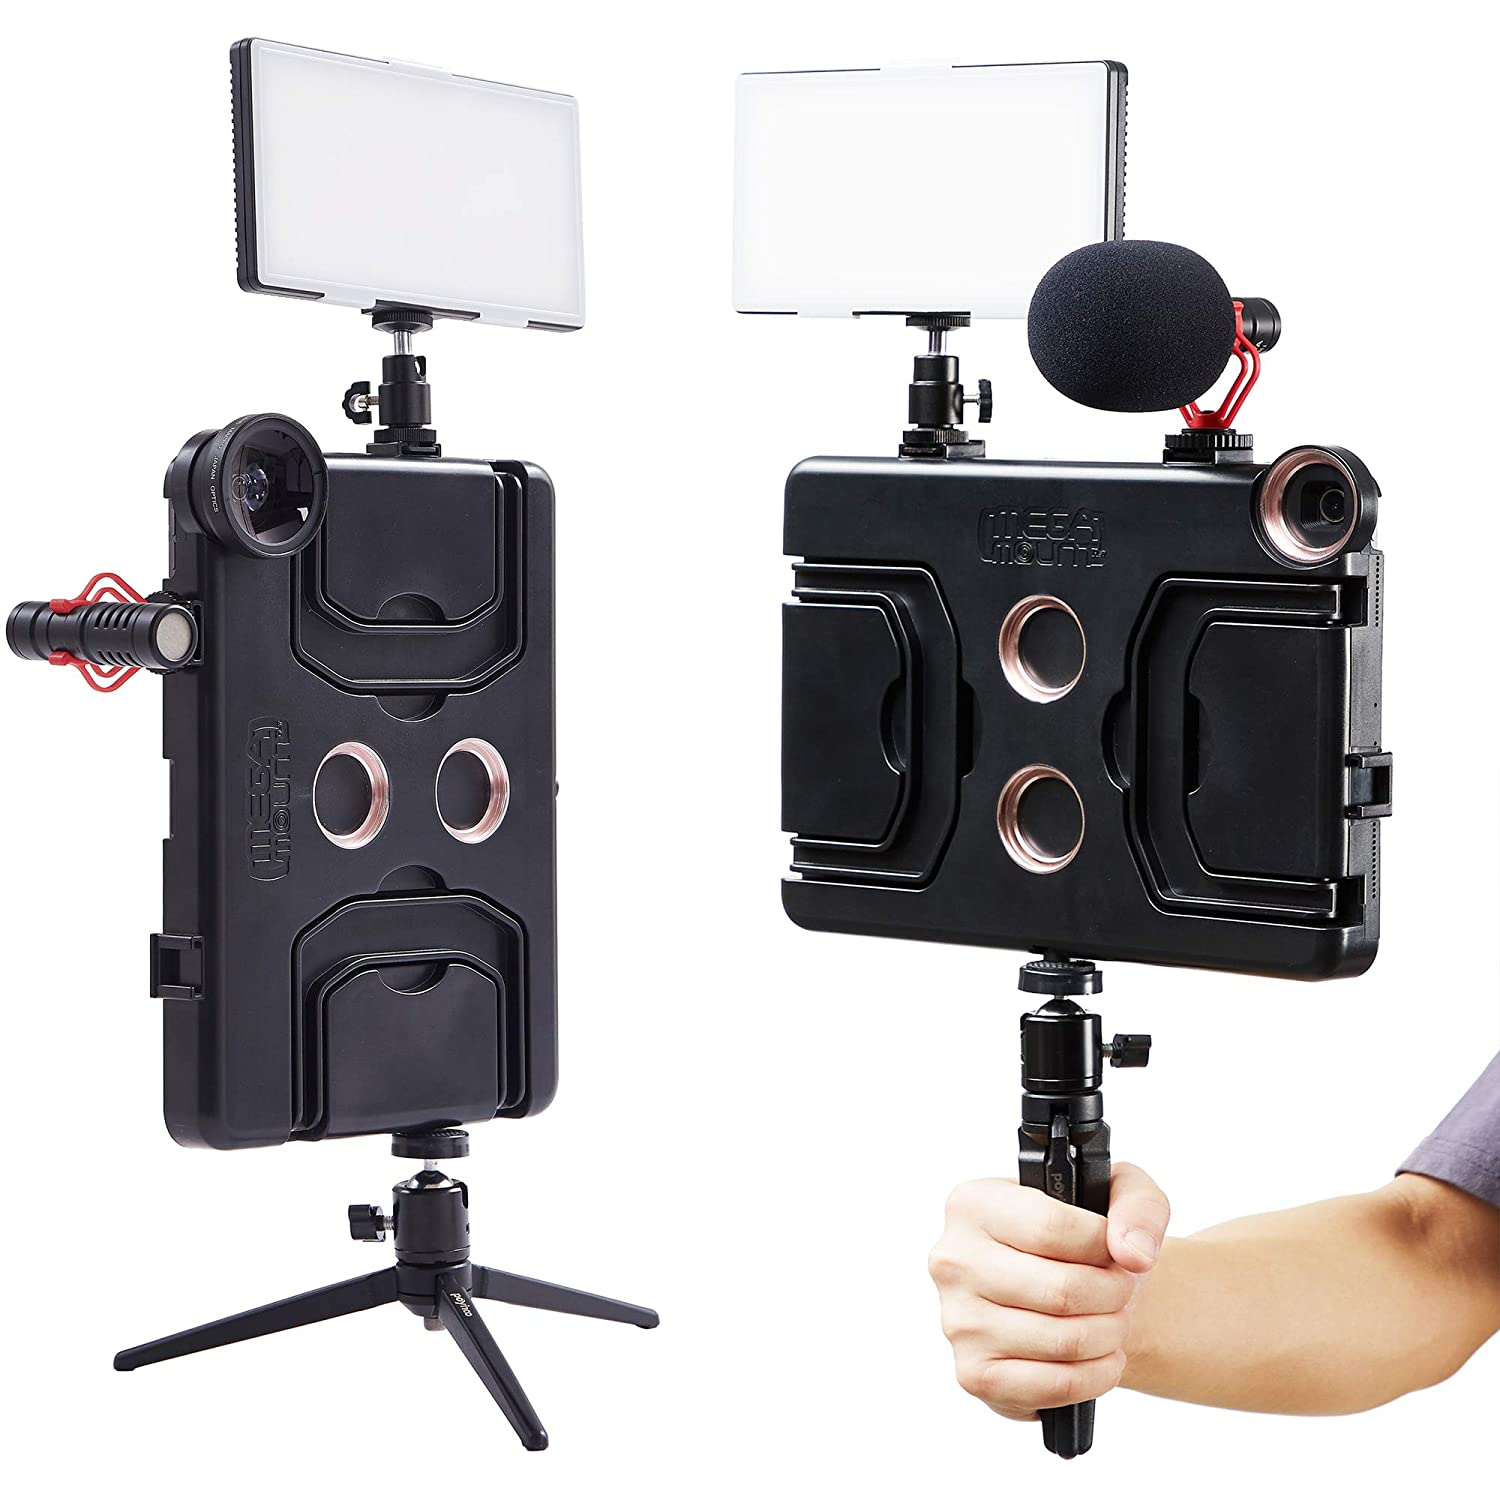 Mounts on Tripods and Monopods MegaMount Multimedia Rig Case Video stabilizer for Apple iPad Pro 12.9 inch Lights Microphones Current 3rd Gen Only Easily Attach Lenses Great for Video Recording